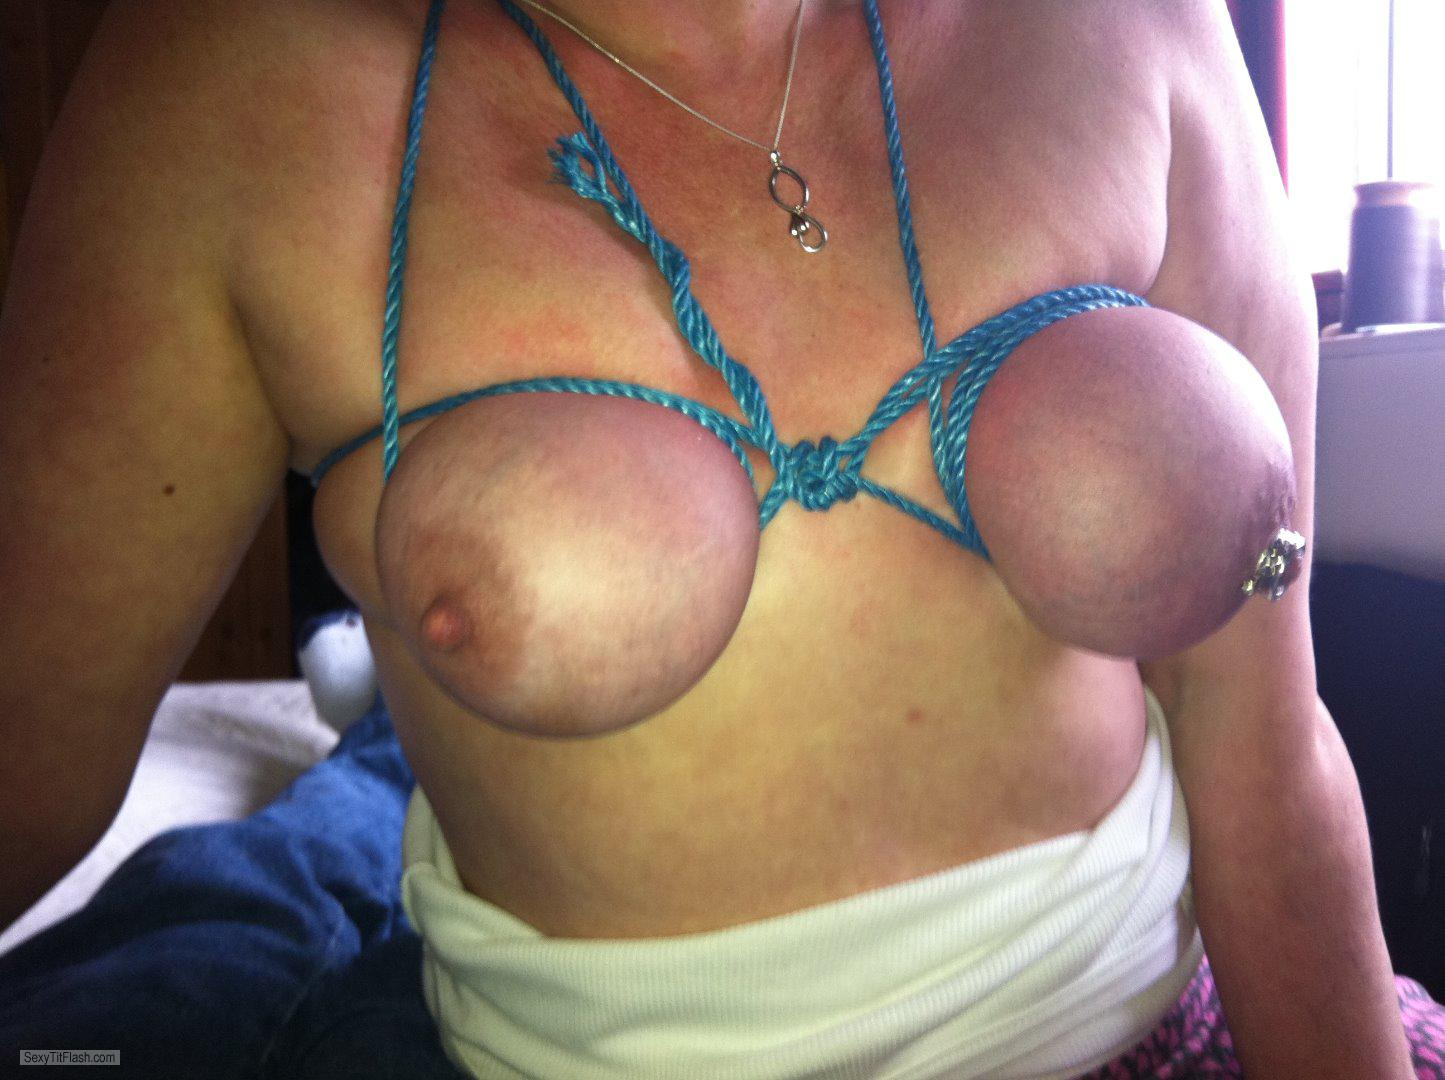 my big tits - butterfly from united kingdom tit flash id 219310